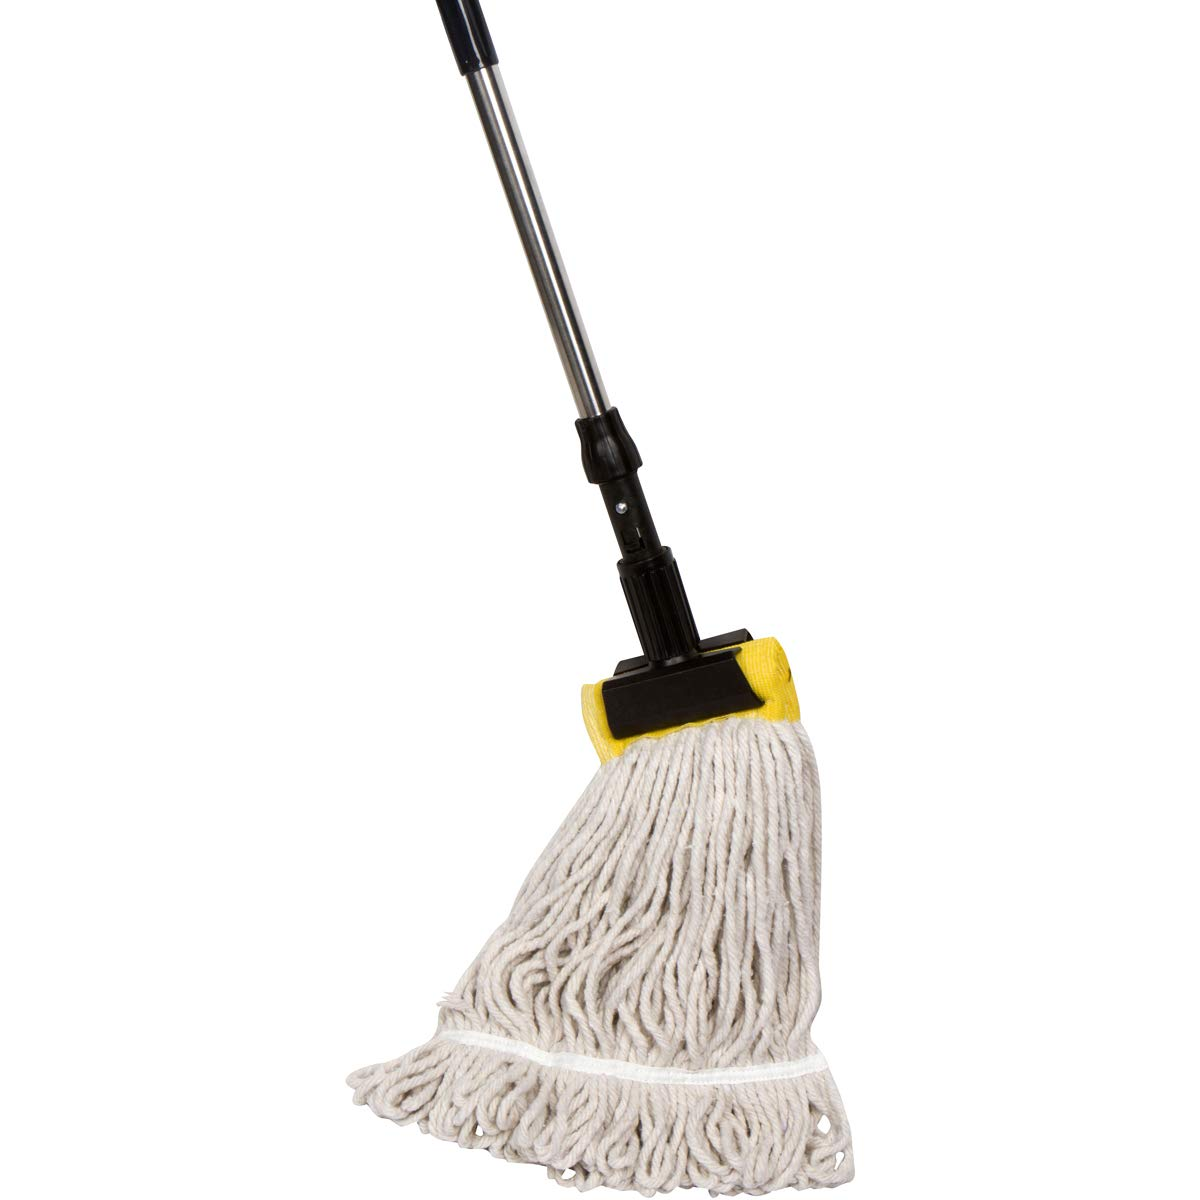 Tidy Tools Industrial Grade String Mop With Aluminum Handle and Jaw Clamp - 26 Oz Heavy Duty Cotton Mop Head With Looped Ends by Tidy Tools